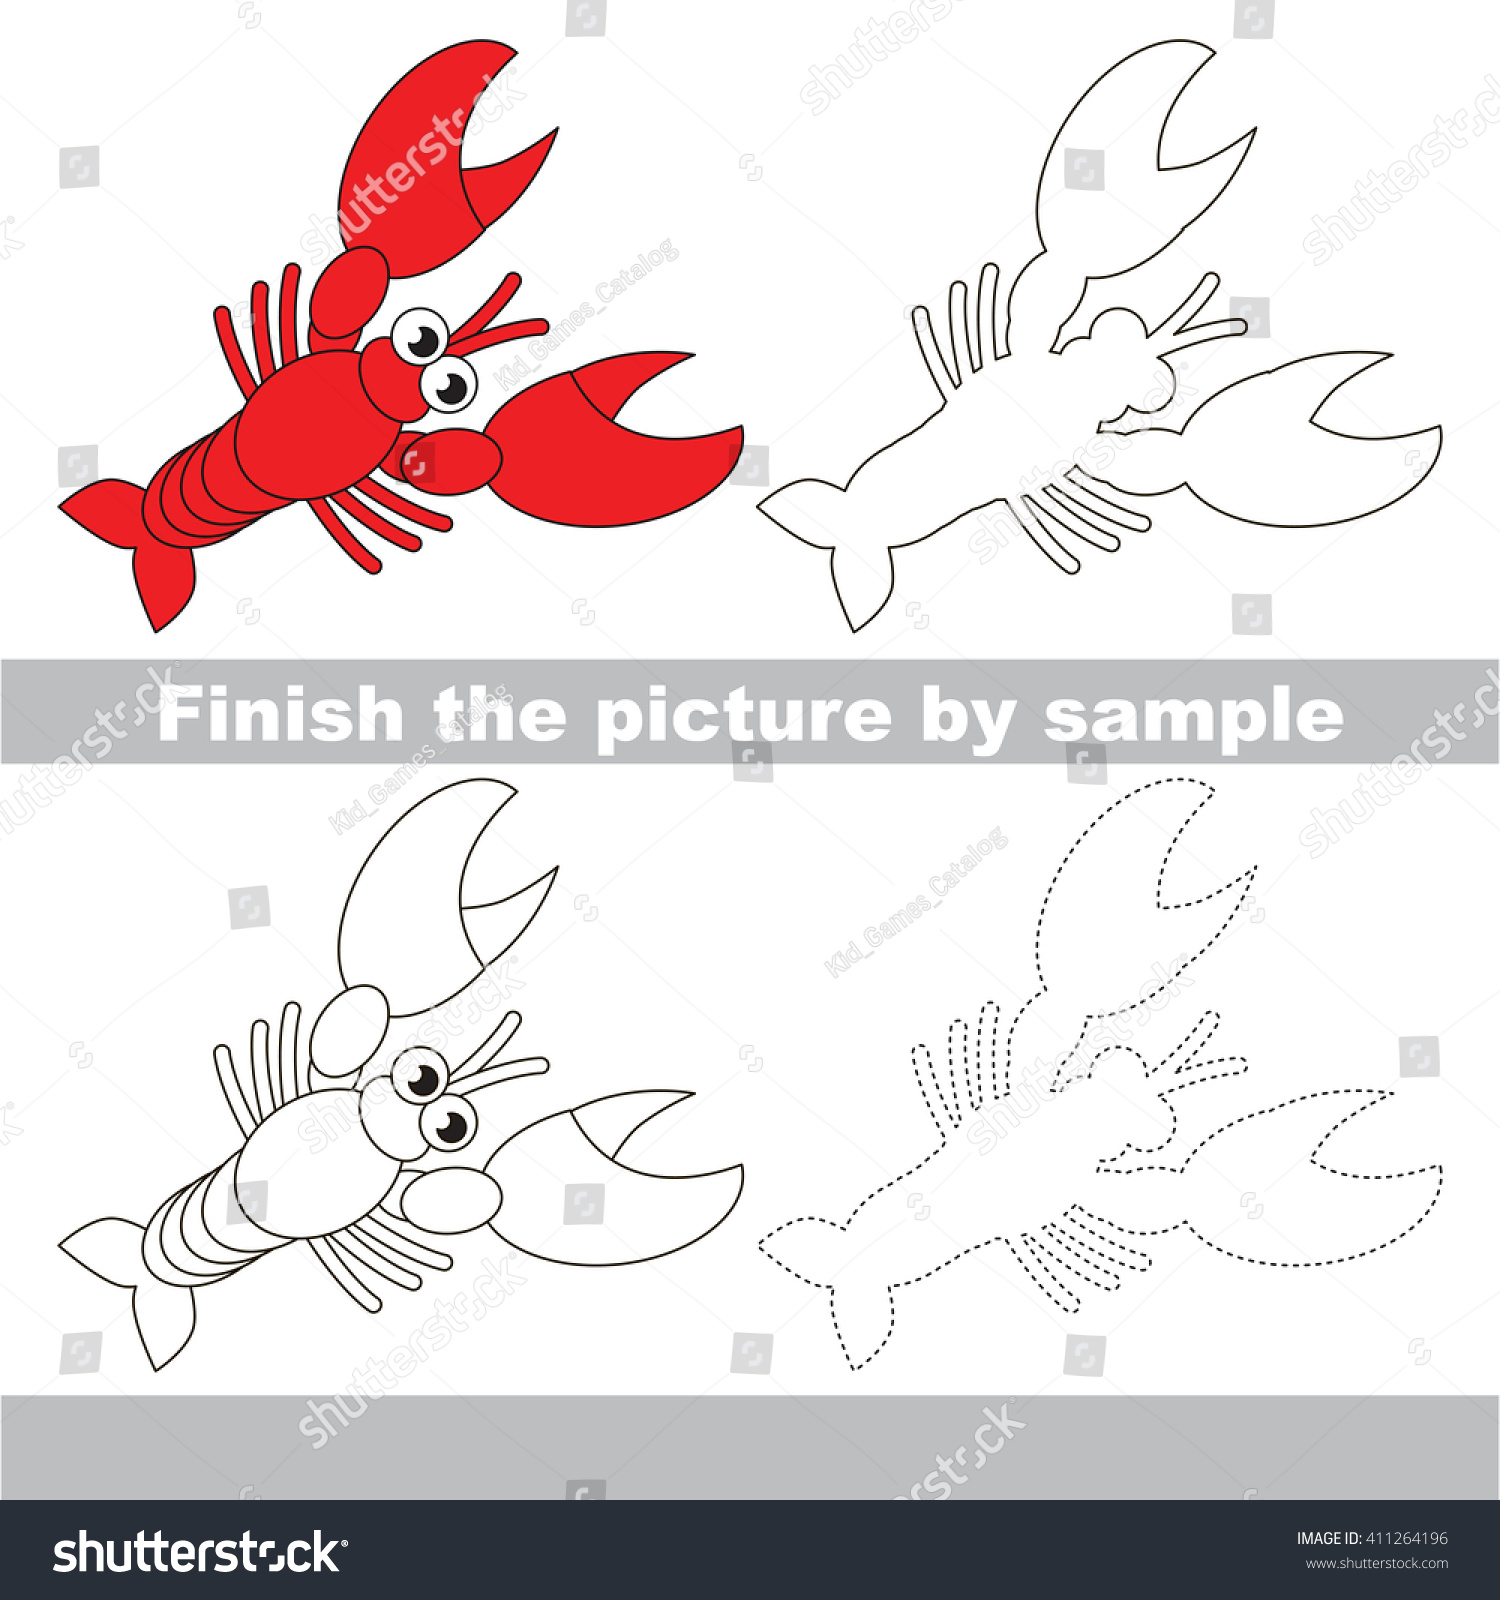 Balancing Redox Reactions Worksheet Drawing Worksheet Children Finish Picture Draw Stock Vector  Map Worksheets 2nd Grade with Conversion Of Metric Units Worksheet Excel Drawing Worksheet For Children Finish The Picture And Draw The Cute Lobster Grade 5 Maths Worksheets Printable Word